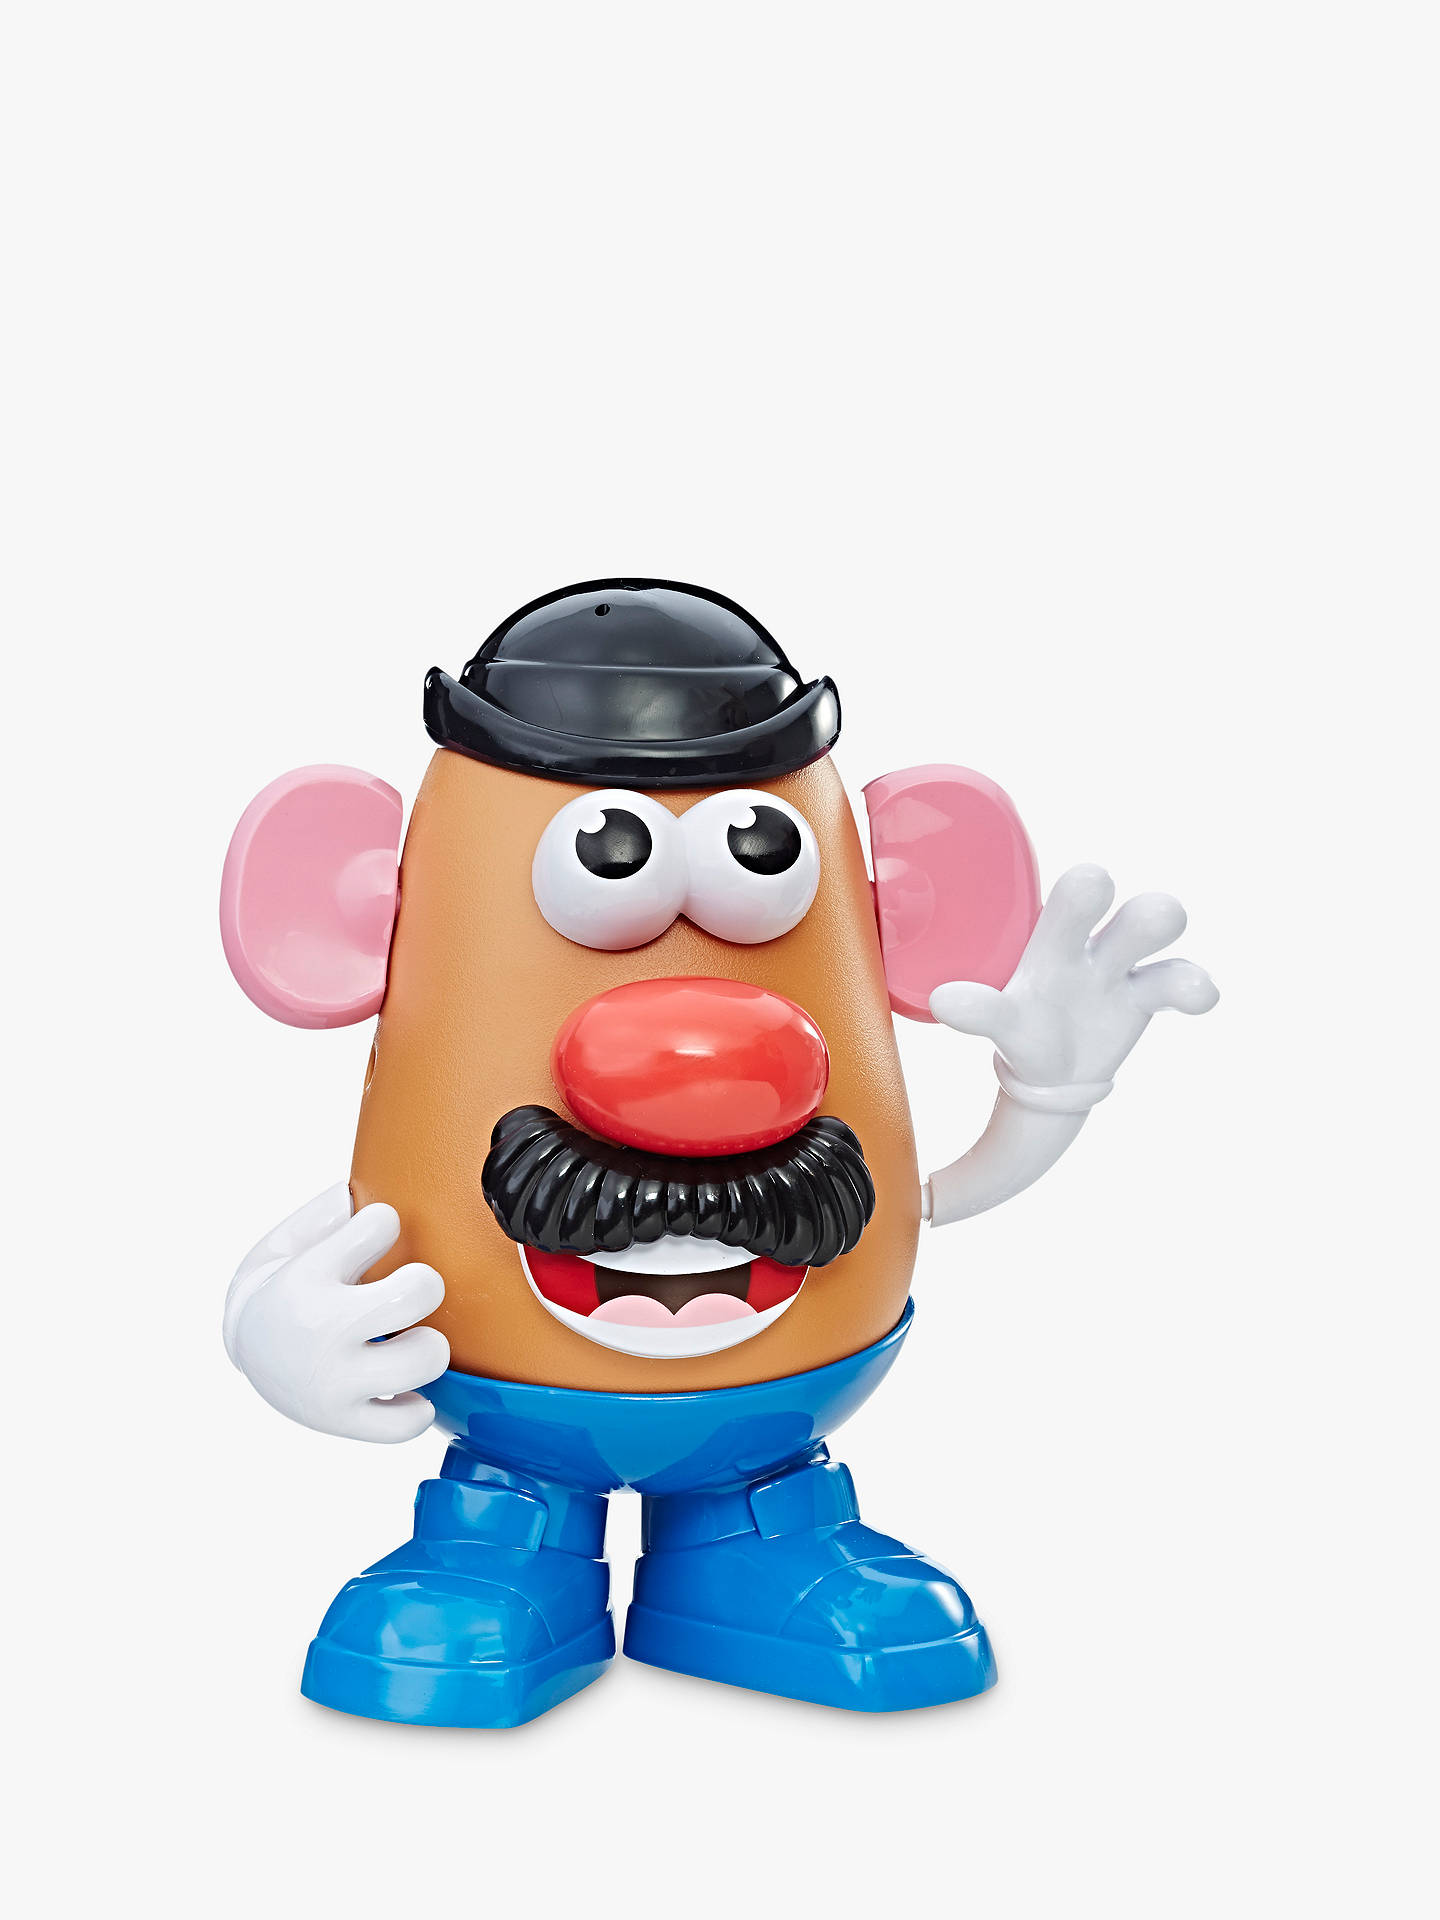 Disney Pixar Toy Story Classic Mr Potato Head Figure